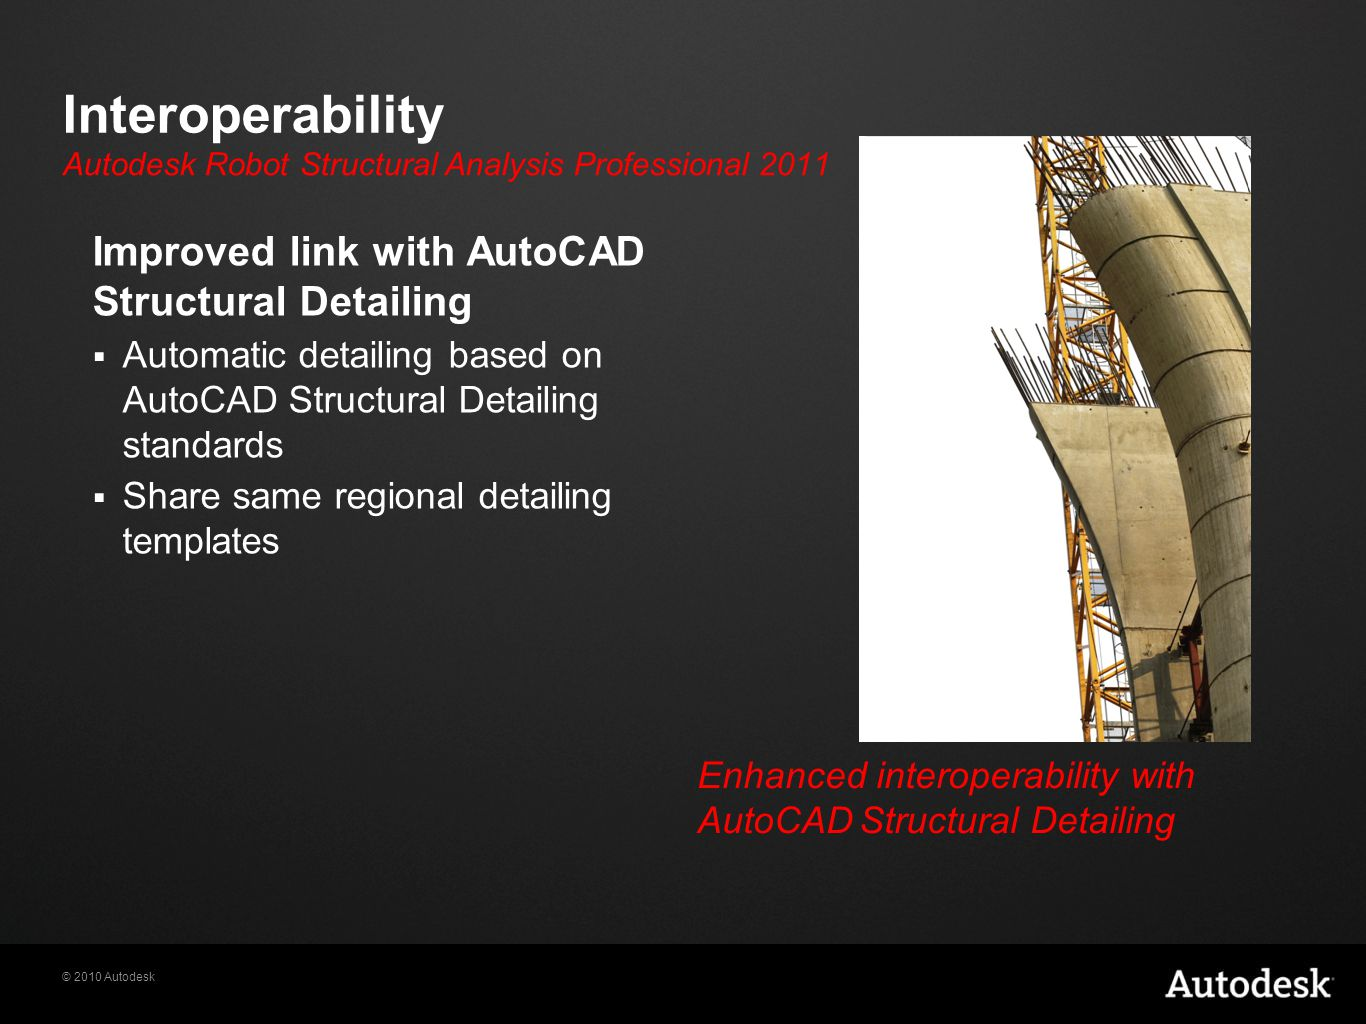 © 2010 Autodesk Interoperability Improved link with AutoCAD Structural Detailing  Automatic detailing based on AutoCAD Structural Detailing standards  Share same regional detailing templates Enhanced interoperability with AutoCAD Structural Detailing Autodesk Robot Structural Analysis Professional 2011